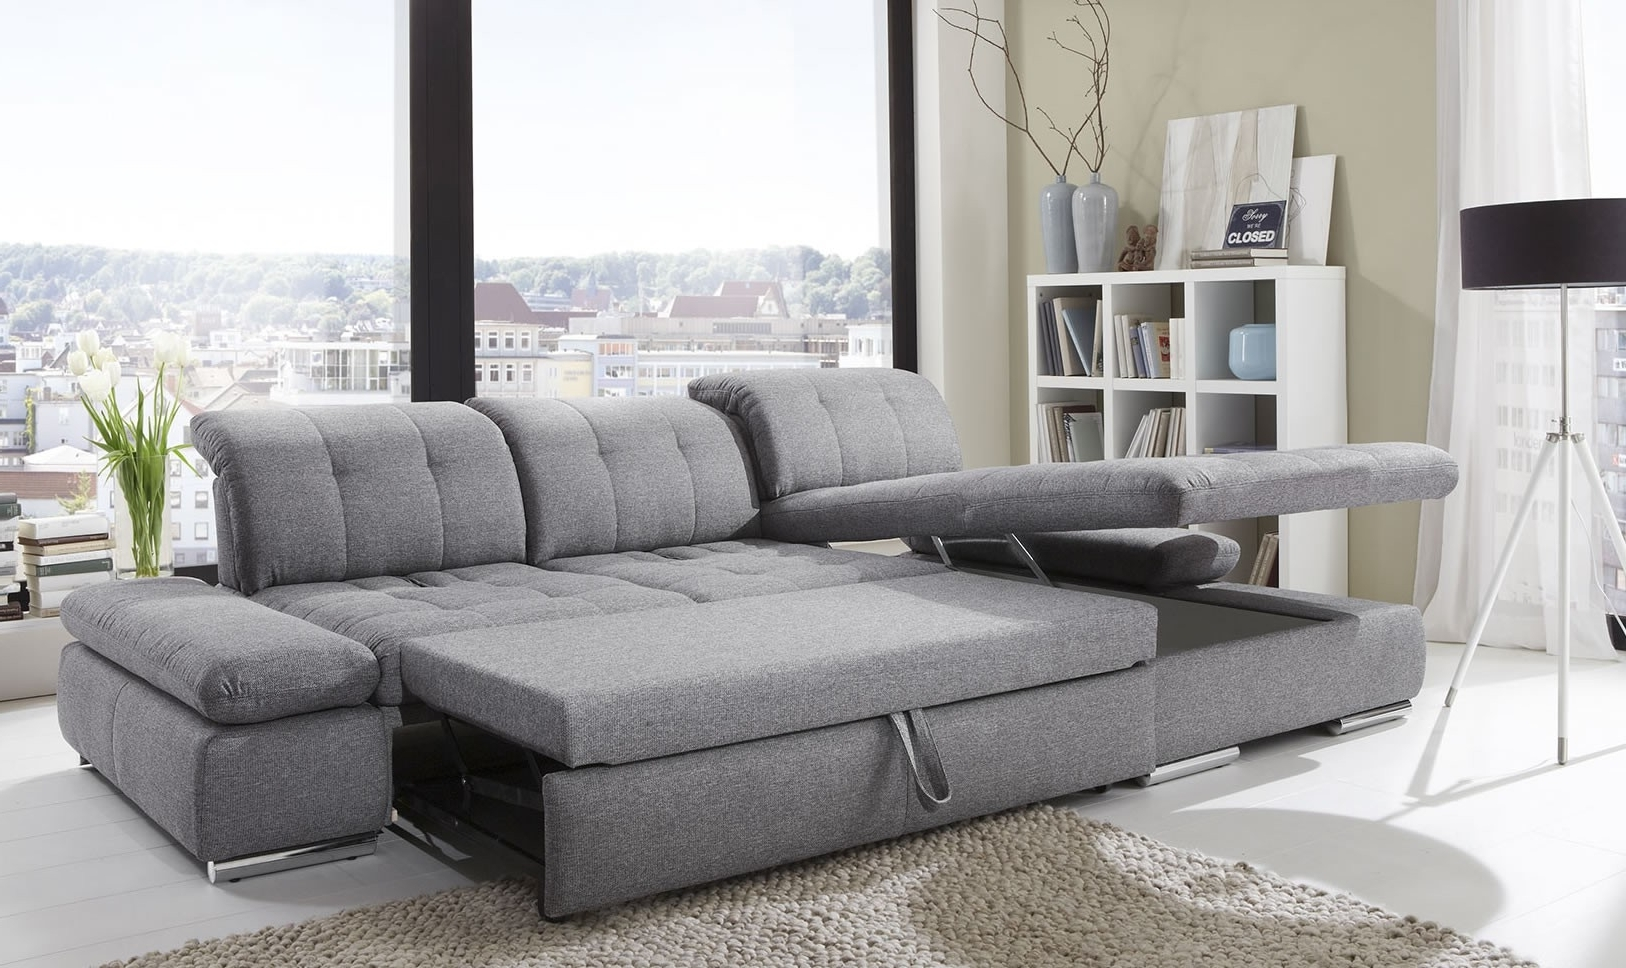 Well Liked Alpine Sectional Sleeper Sofa, Left Arm Chaise Facing, Black Intended For Sleeper Chaises (View 15 of 15)